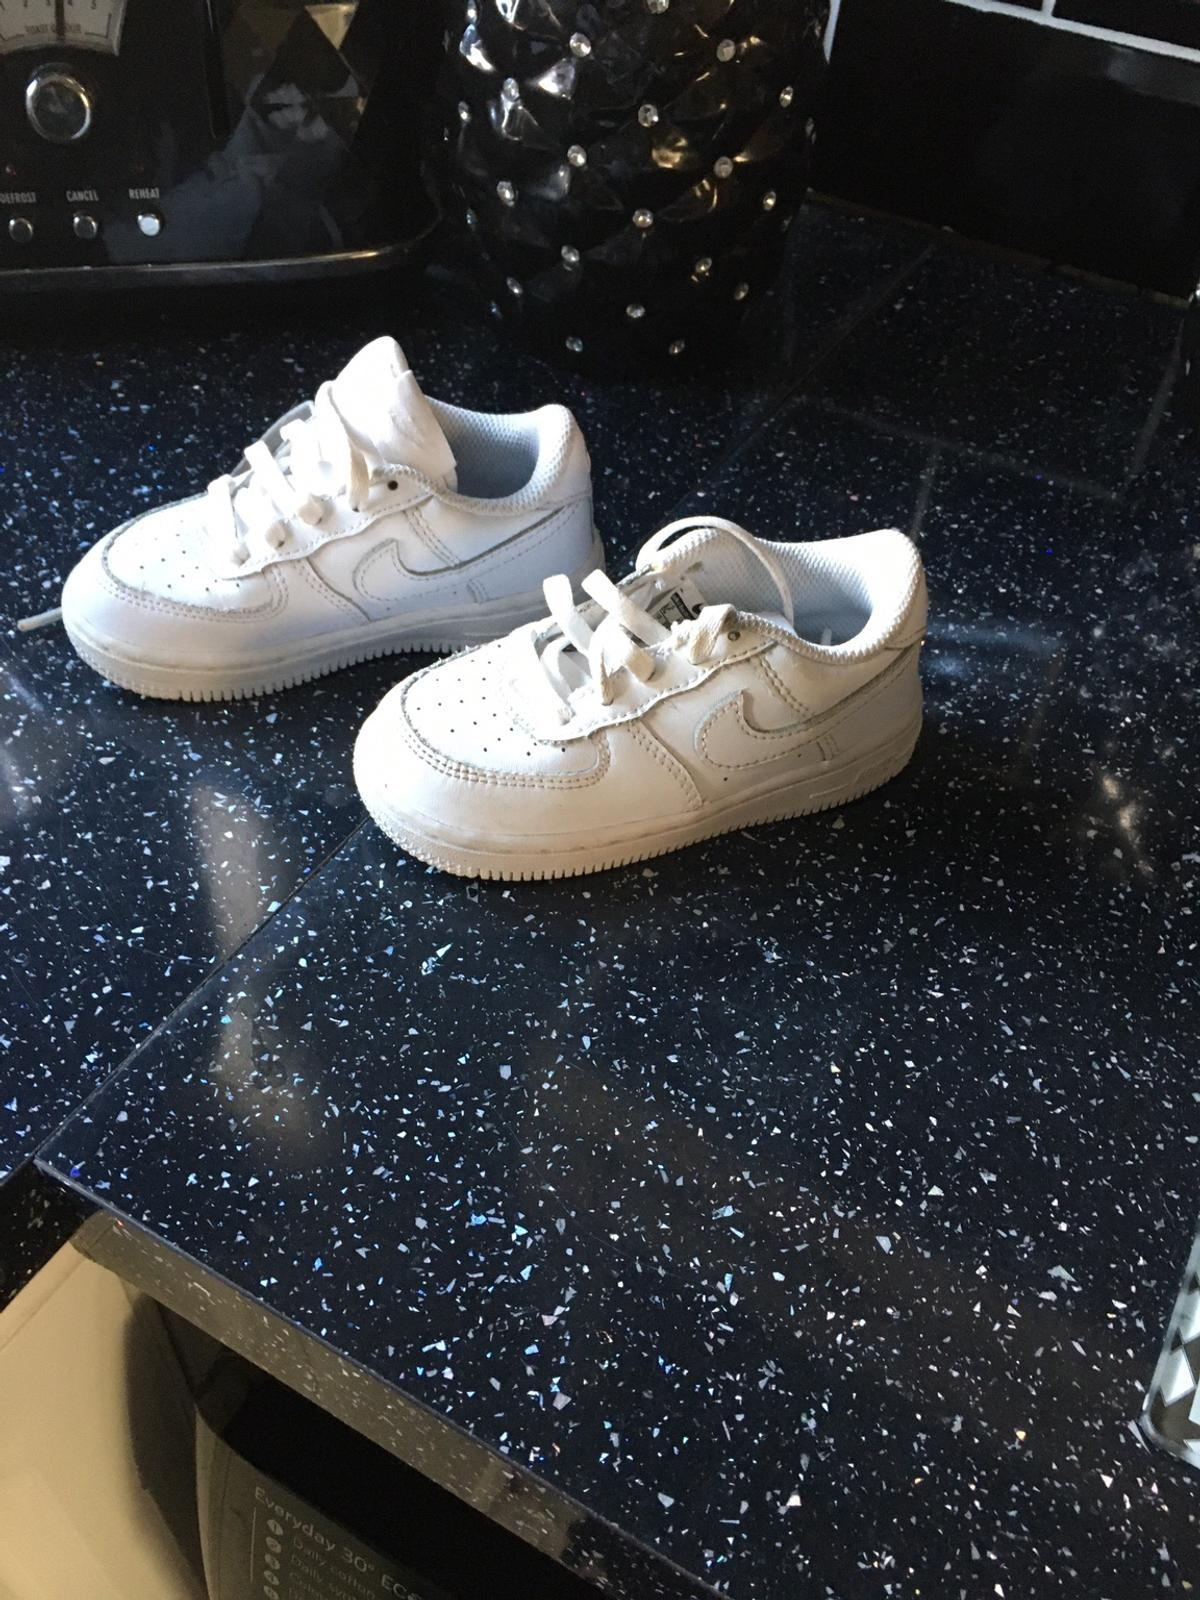 White Air Force size 7.5